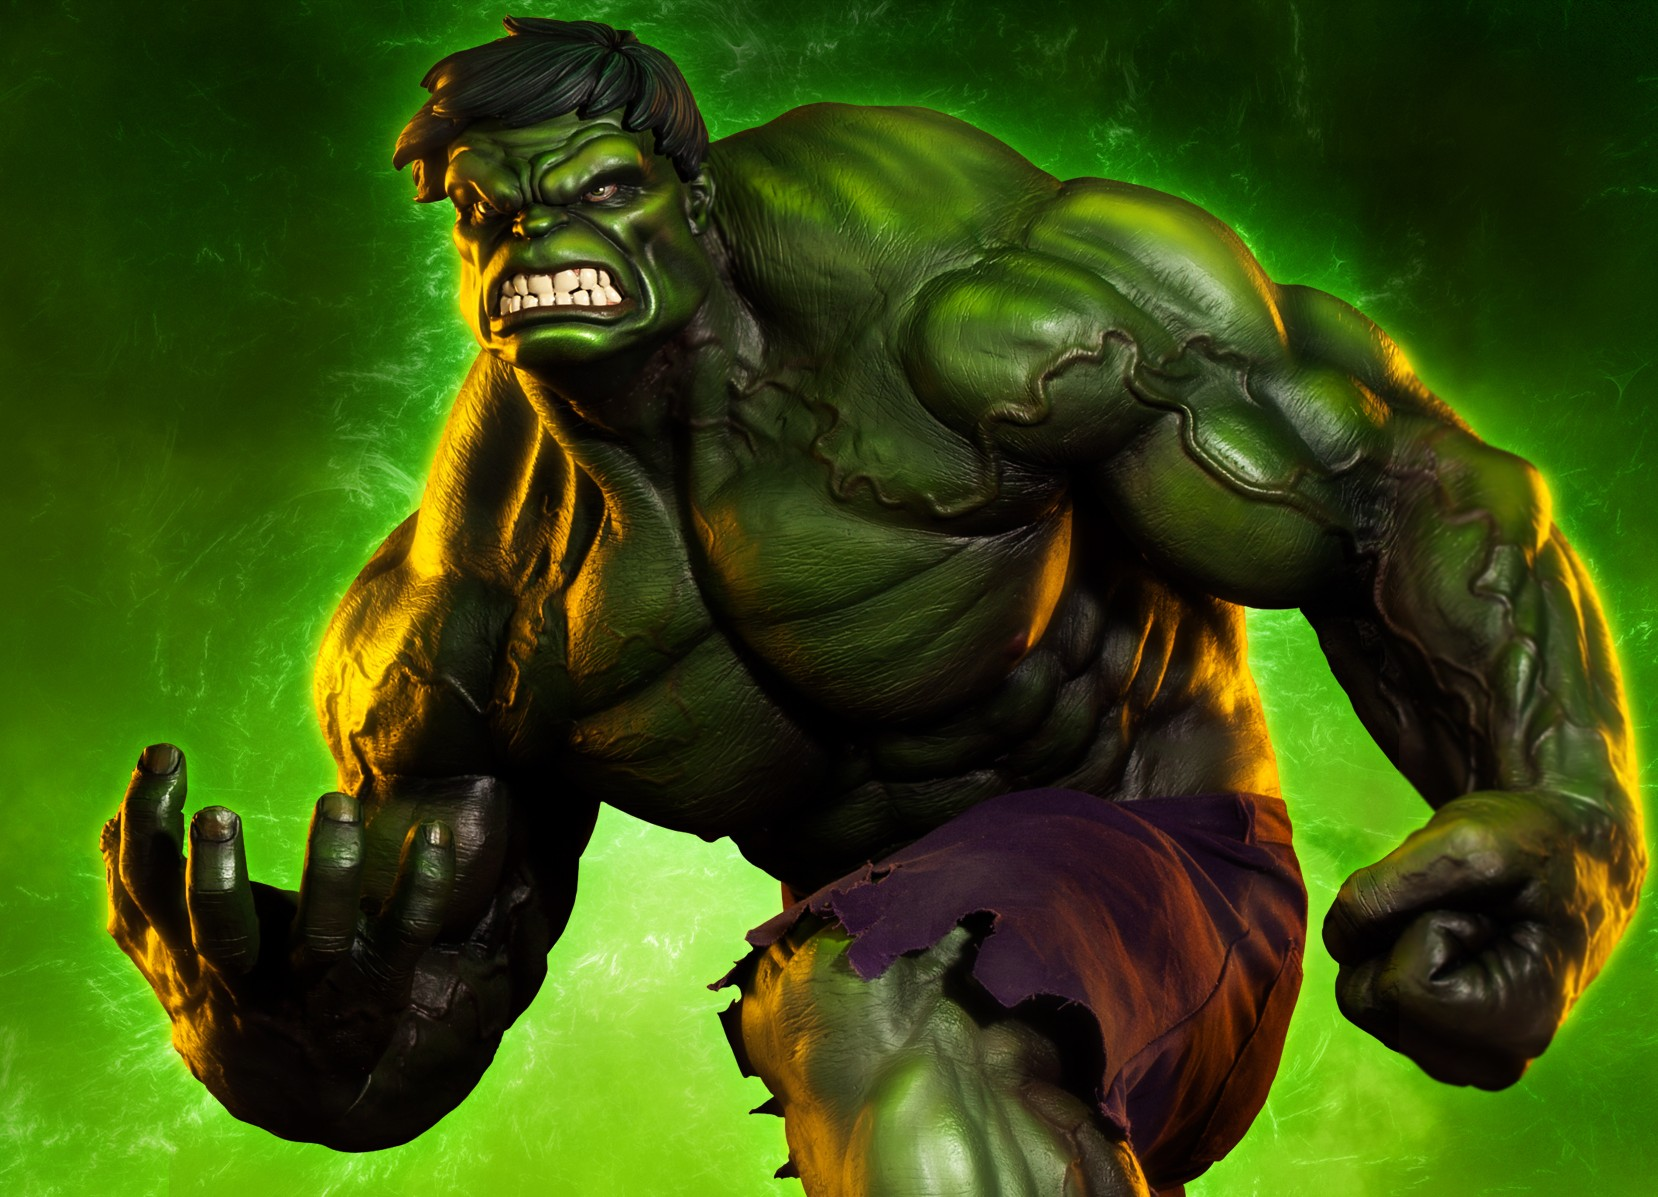 Hulk Wallpaper cartoon HD Desktop Wallpapers 4k HD